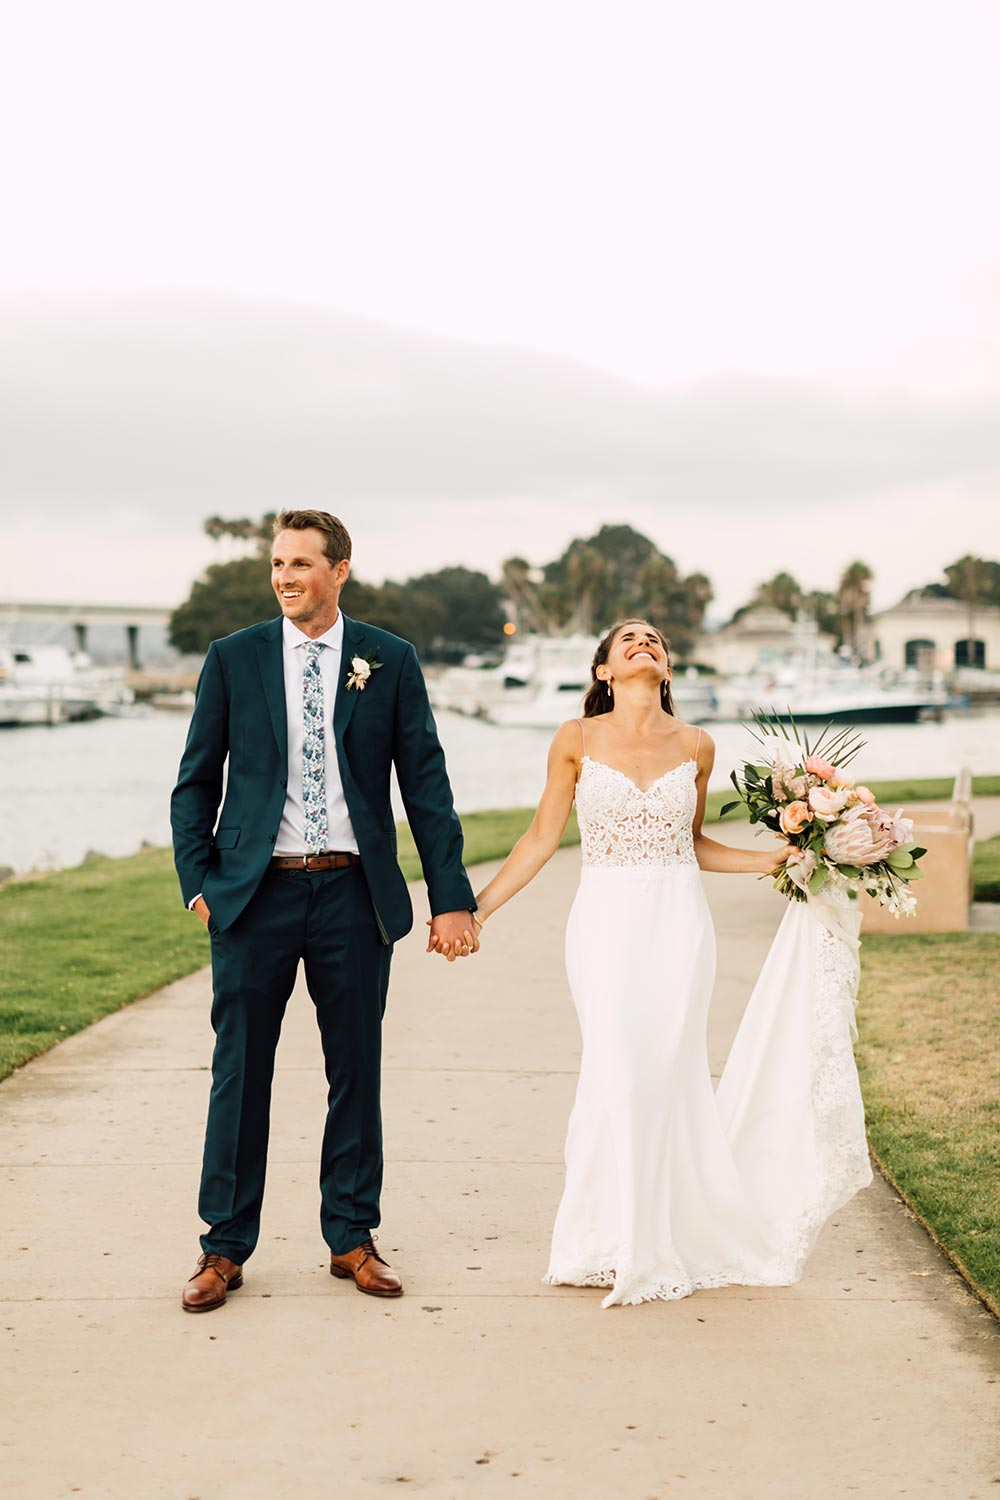 embroidered spaghetti strap wedding dress with navy groom suit and printed floral tie